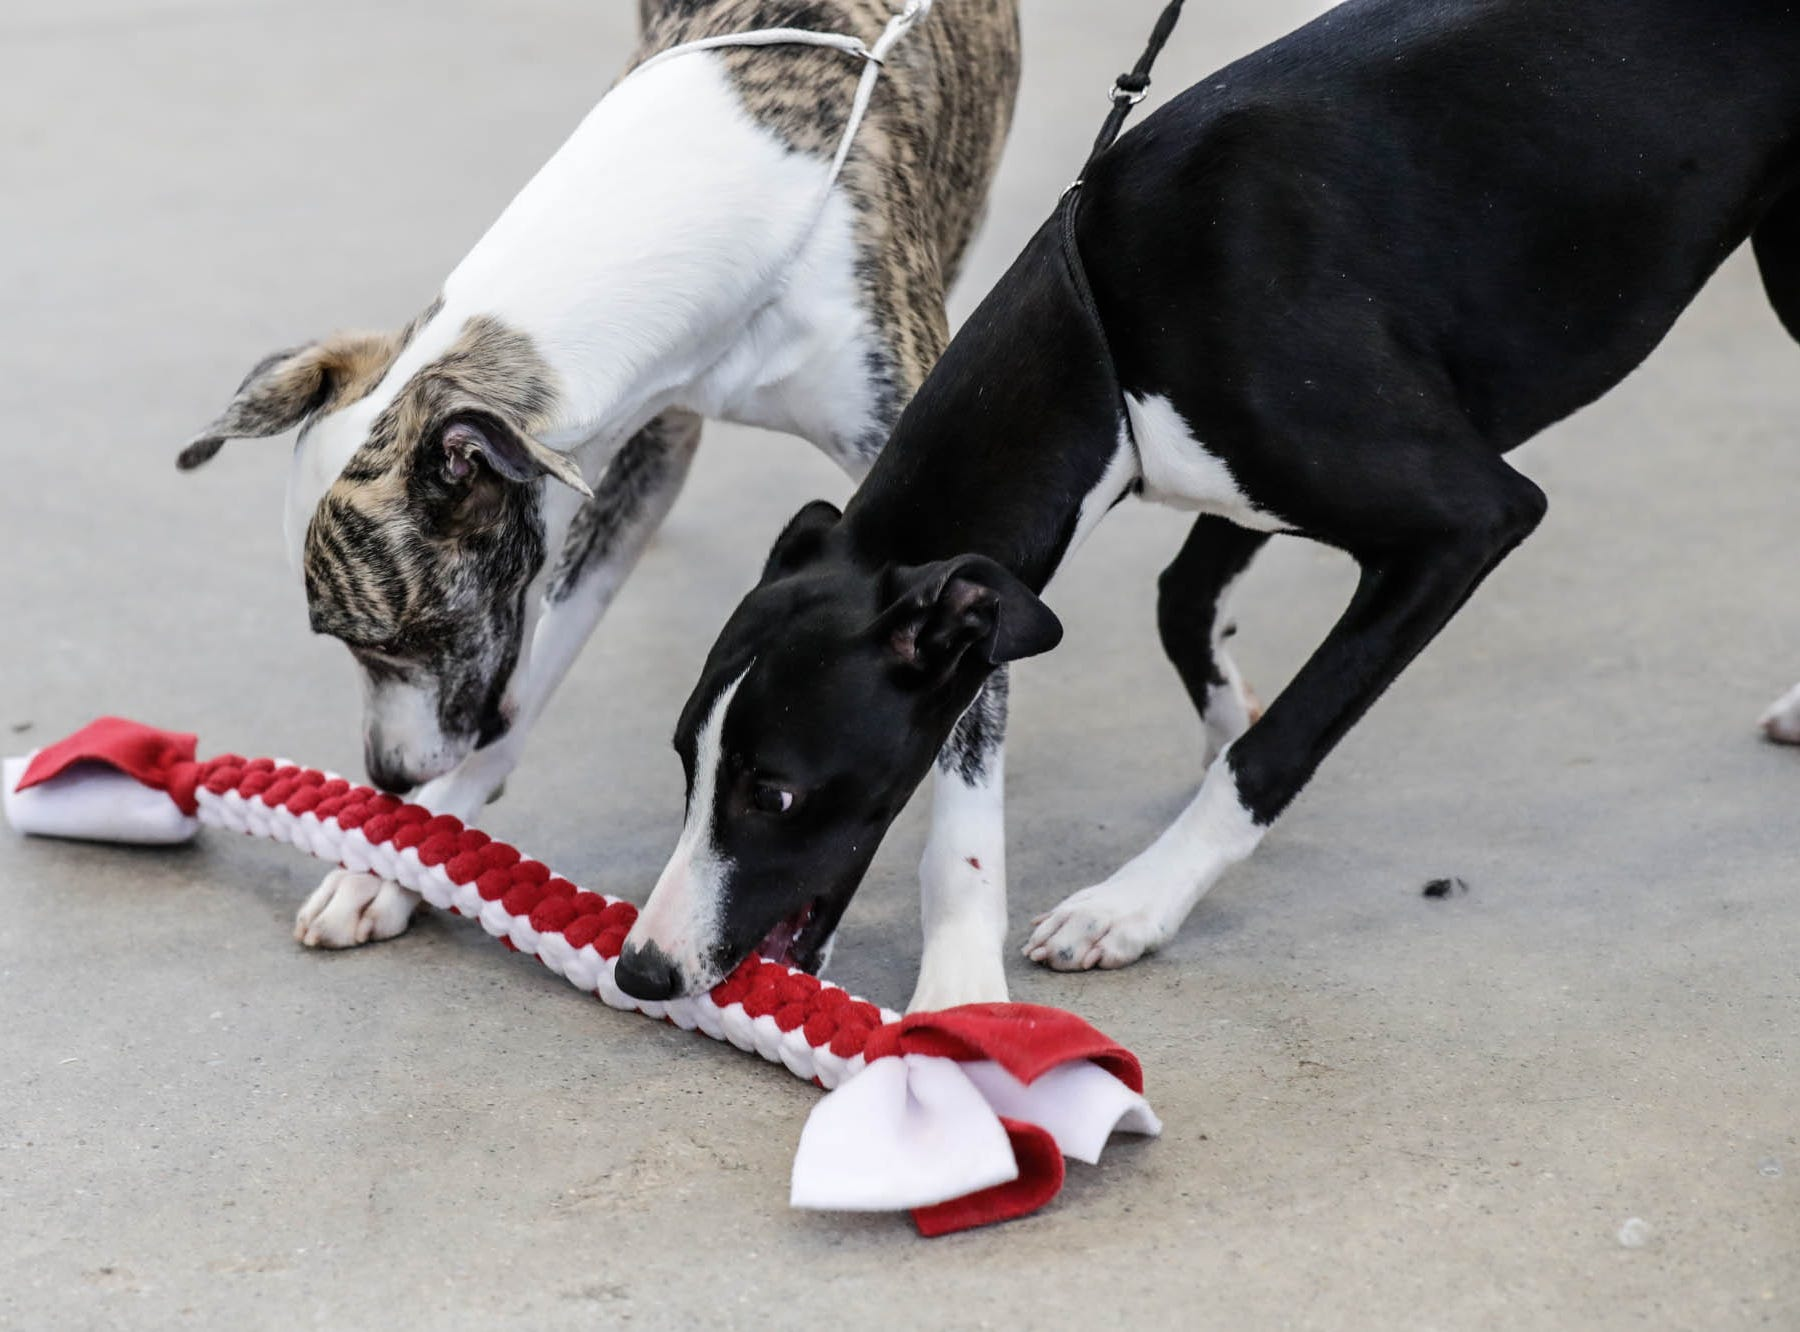 Whippets, Seymore, left, and Petra share a toy at the Indy Winter Classic All Breed Dog Show, held at the Indiana State Fairgrounds on Sunday, Feb. 10, 2019.